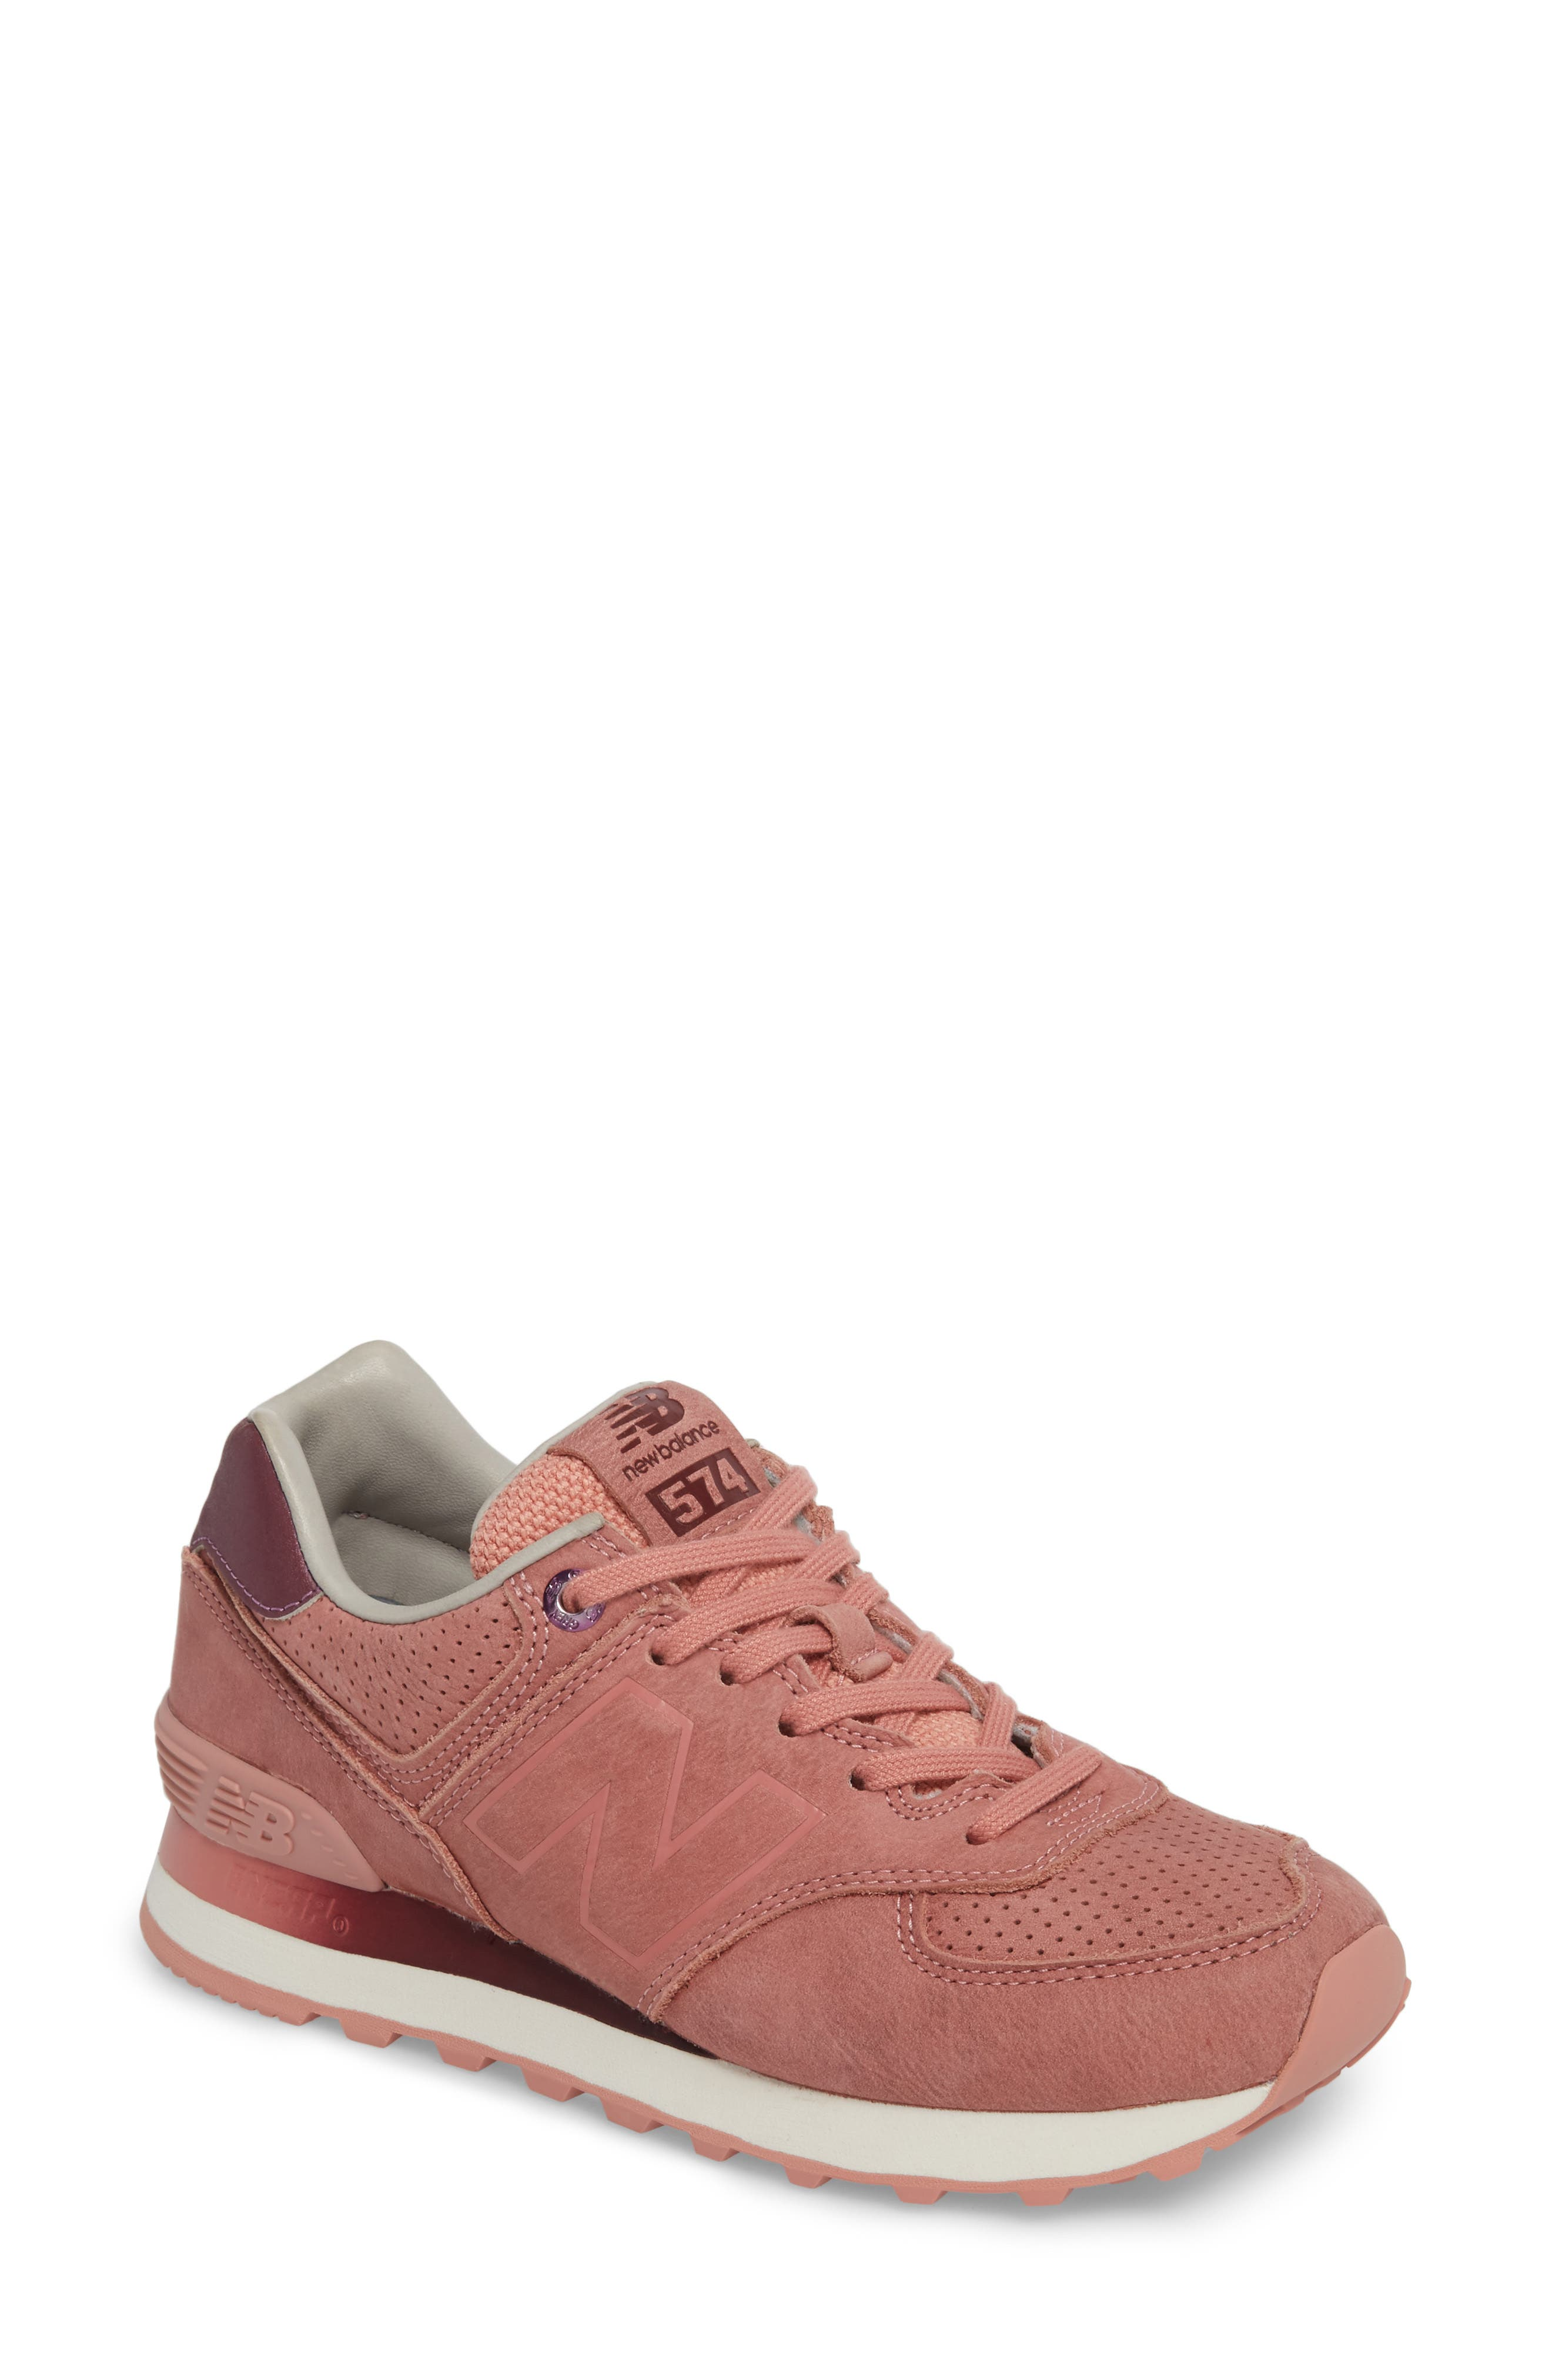 574 Sneaker,                             Main thumbnail 1, color,                             Dusted Peach